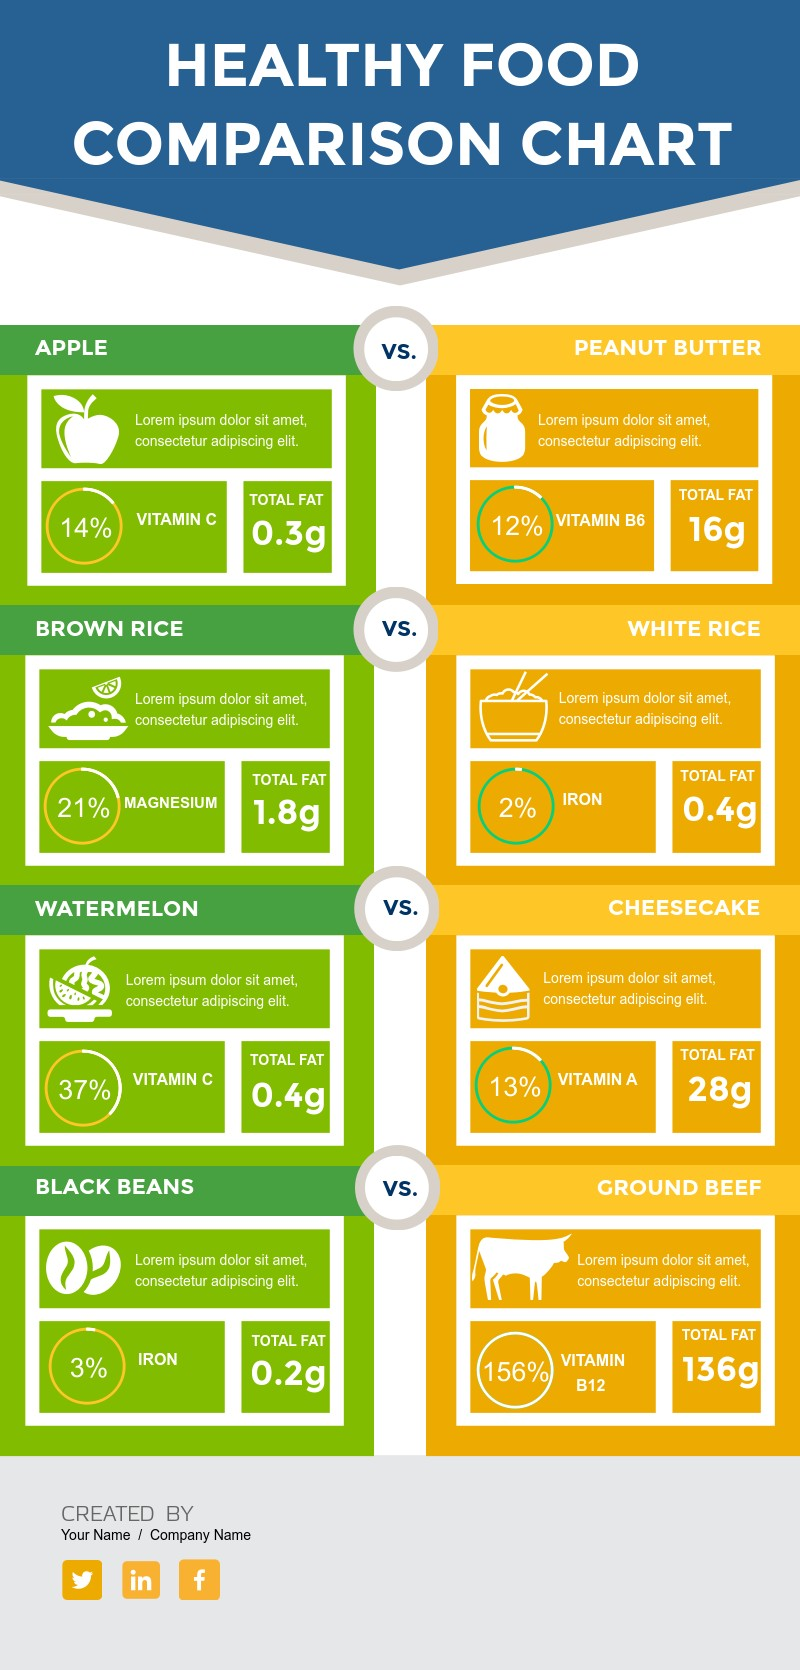 Healthy Food Comparison Chart Template - Visme